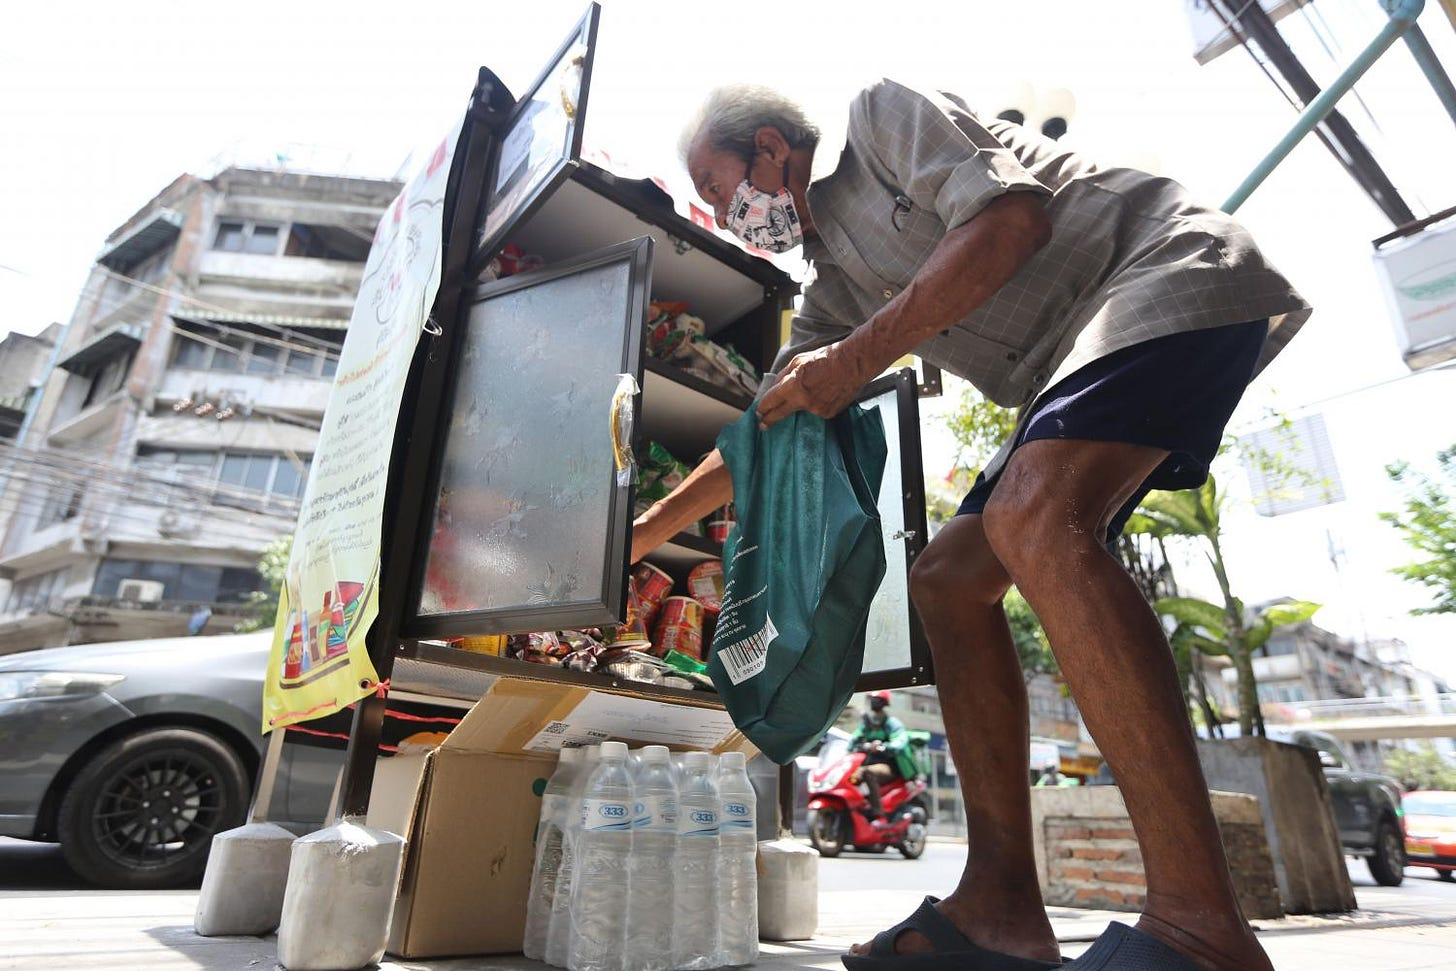 A man selects items he needs from a roadside cupboard on Sukhumvit 71.  Wichan Charoenkiatpakul